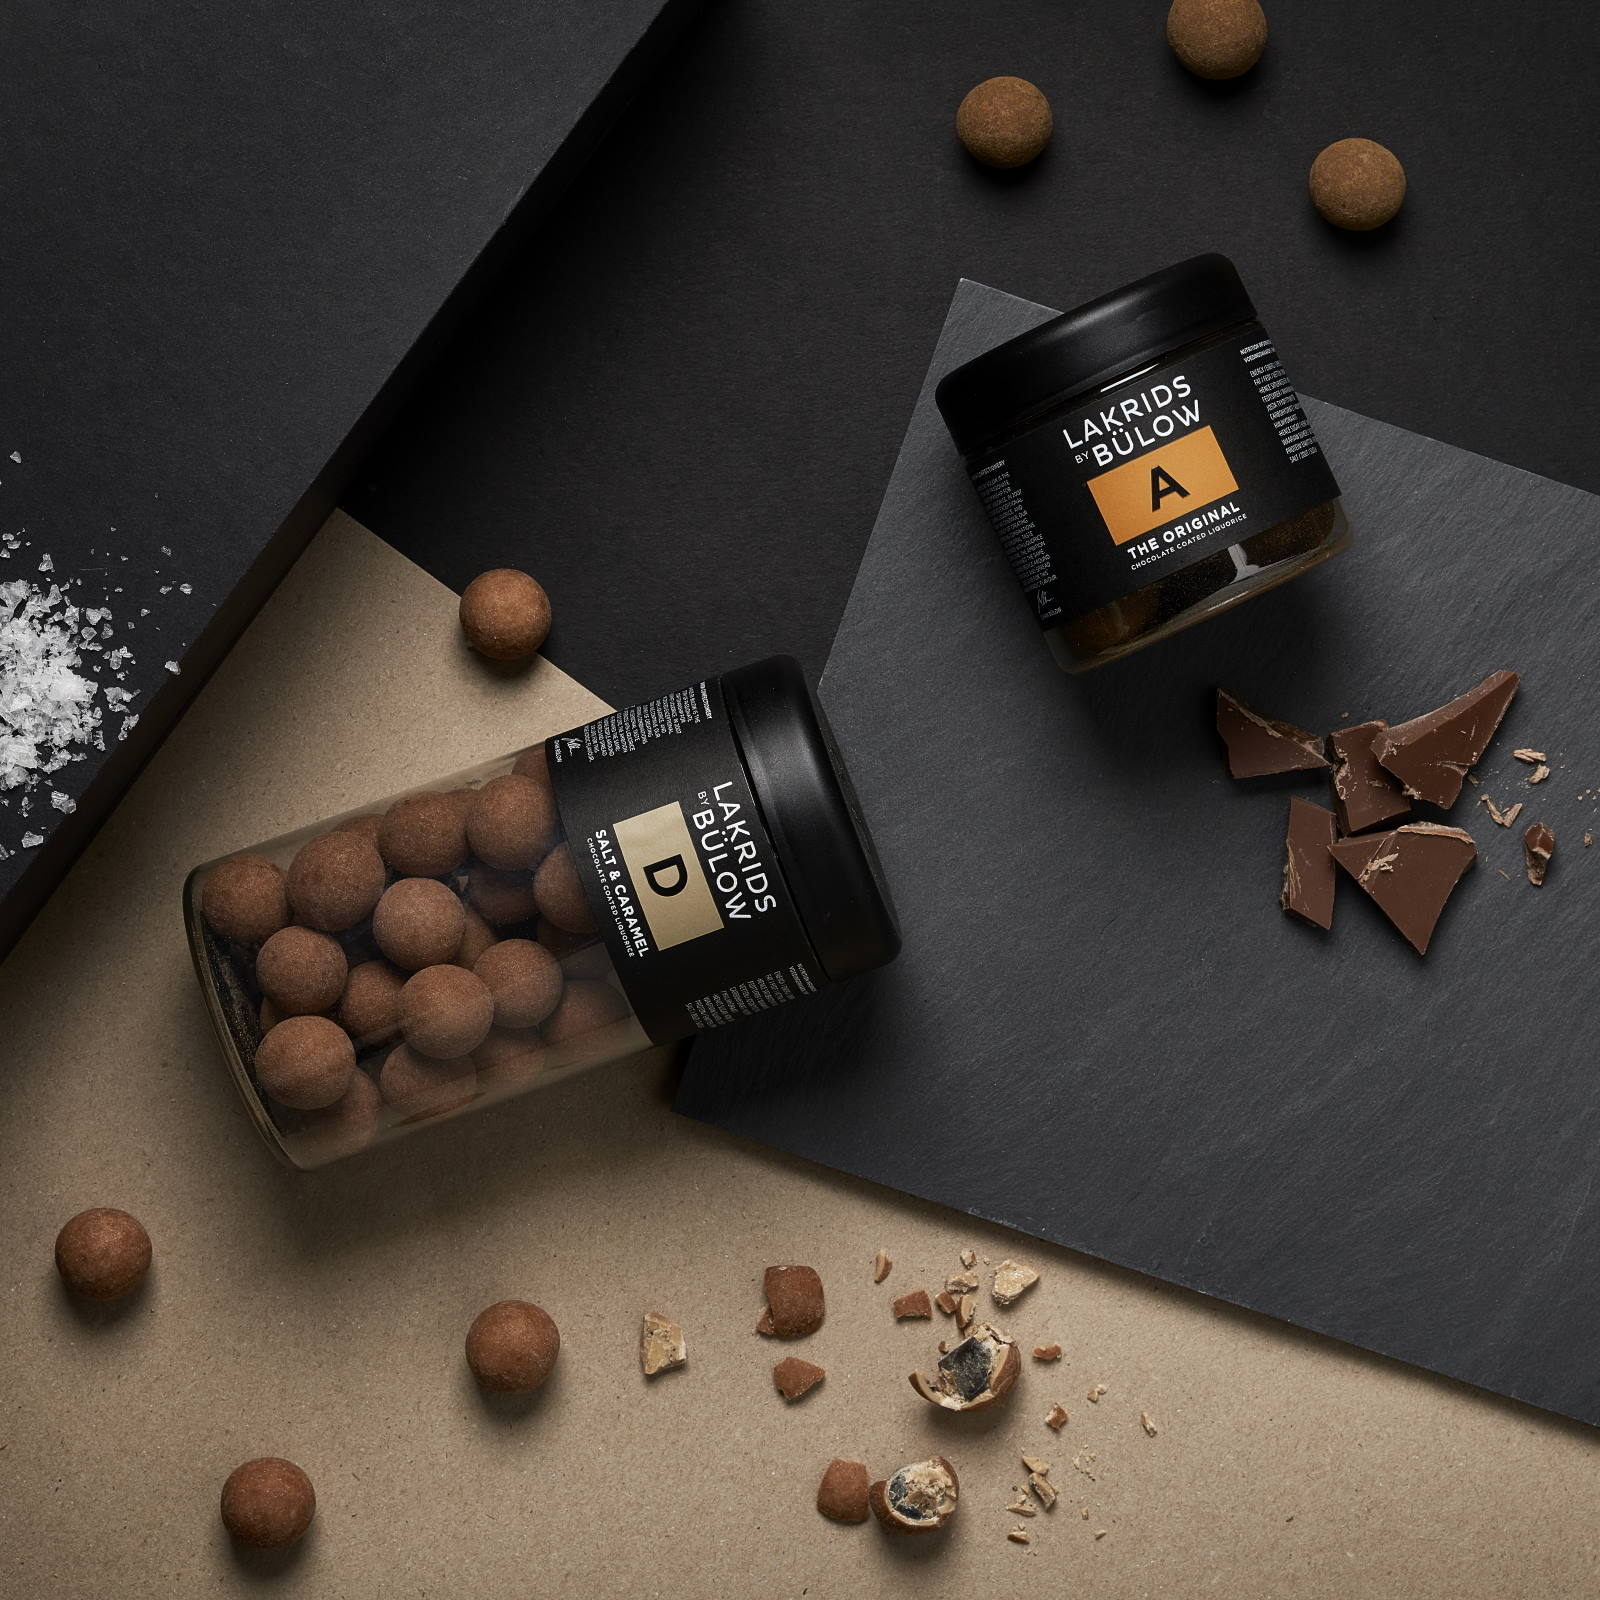 Liquorice Hesven - Official UK retailer of Lakrids Danish Liquorice